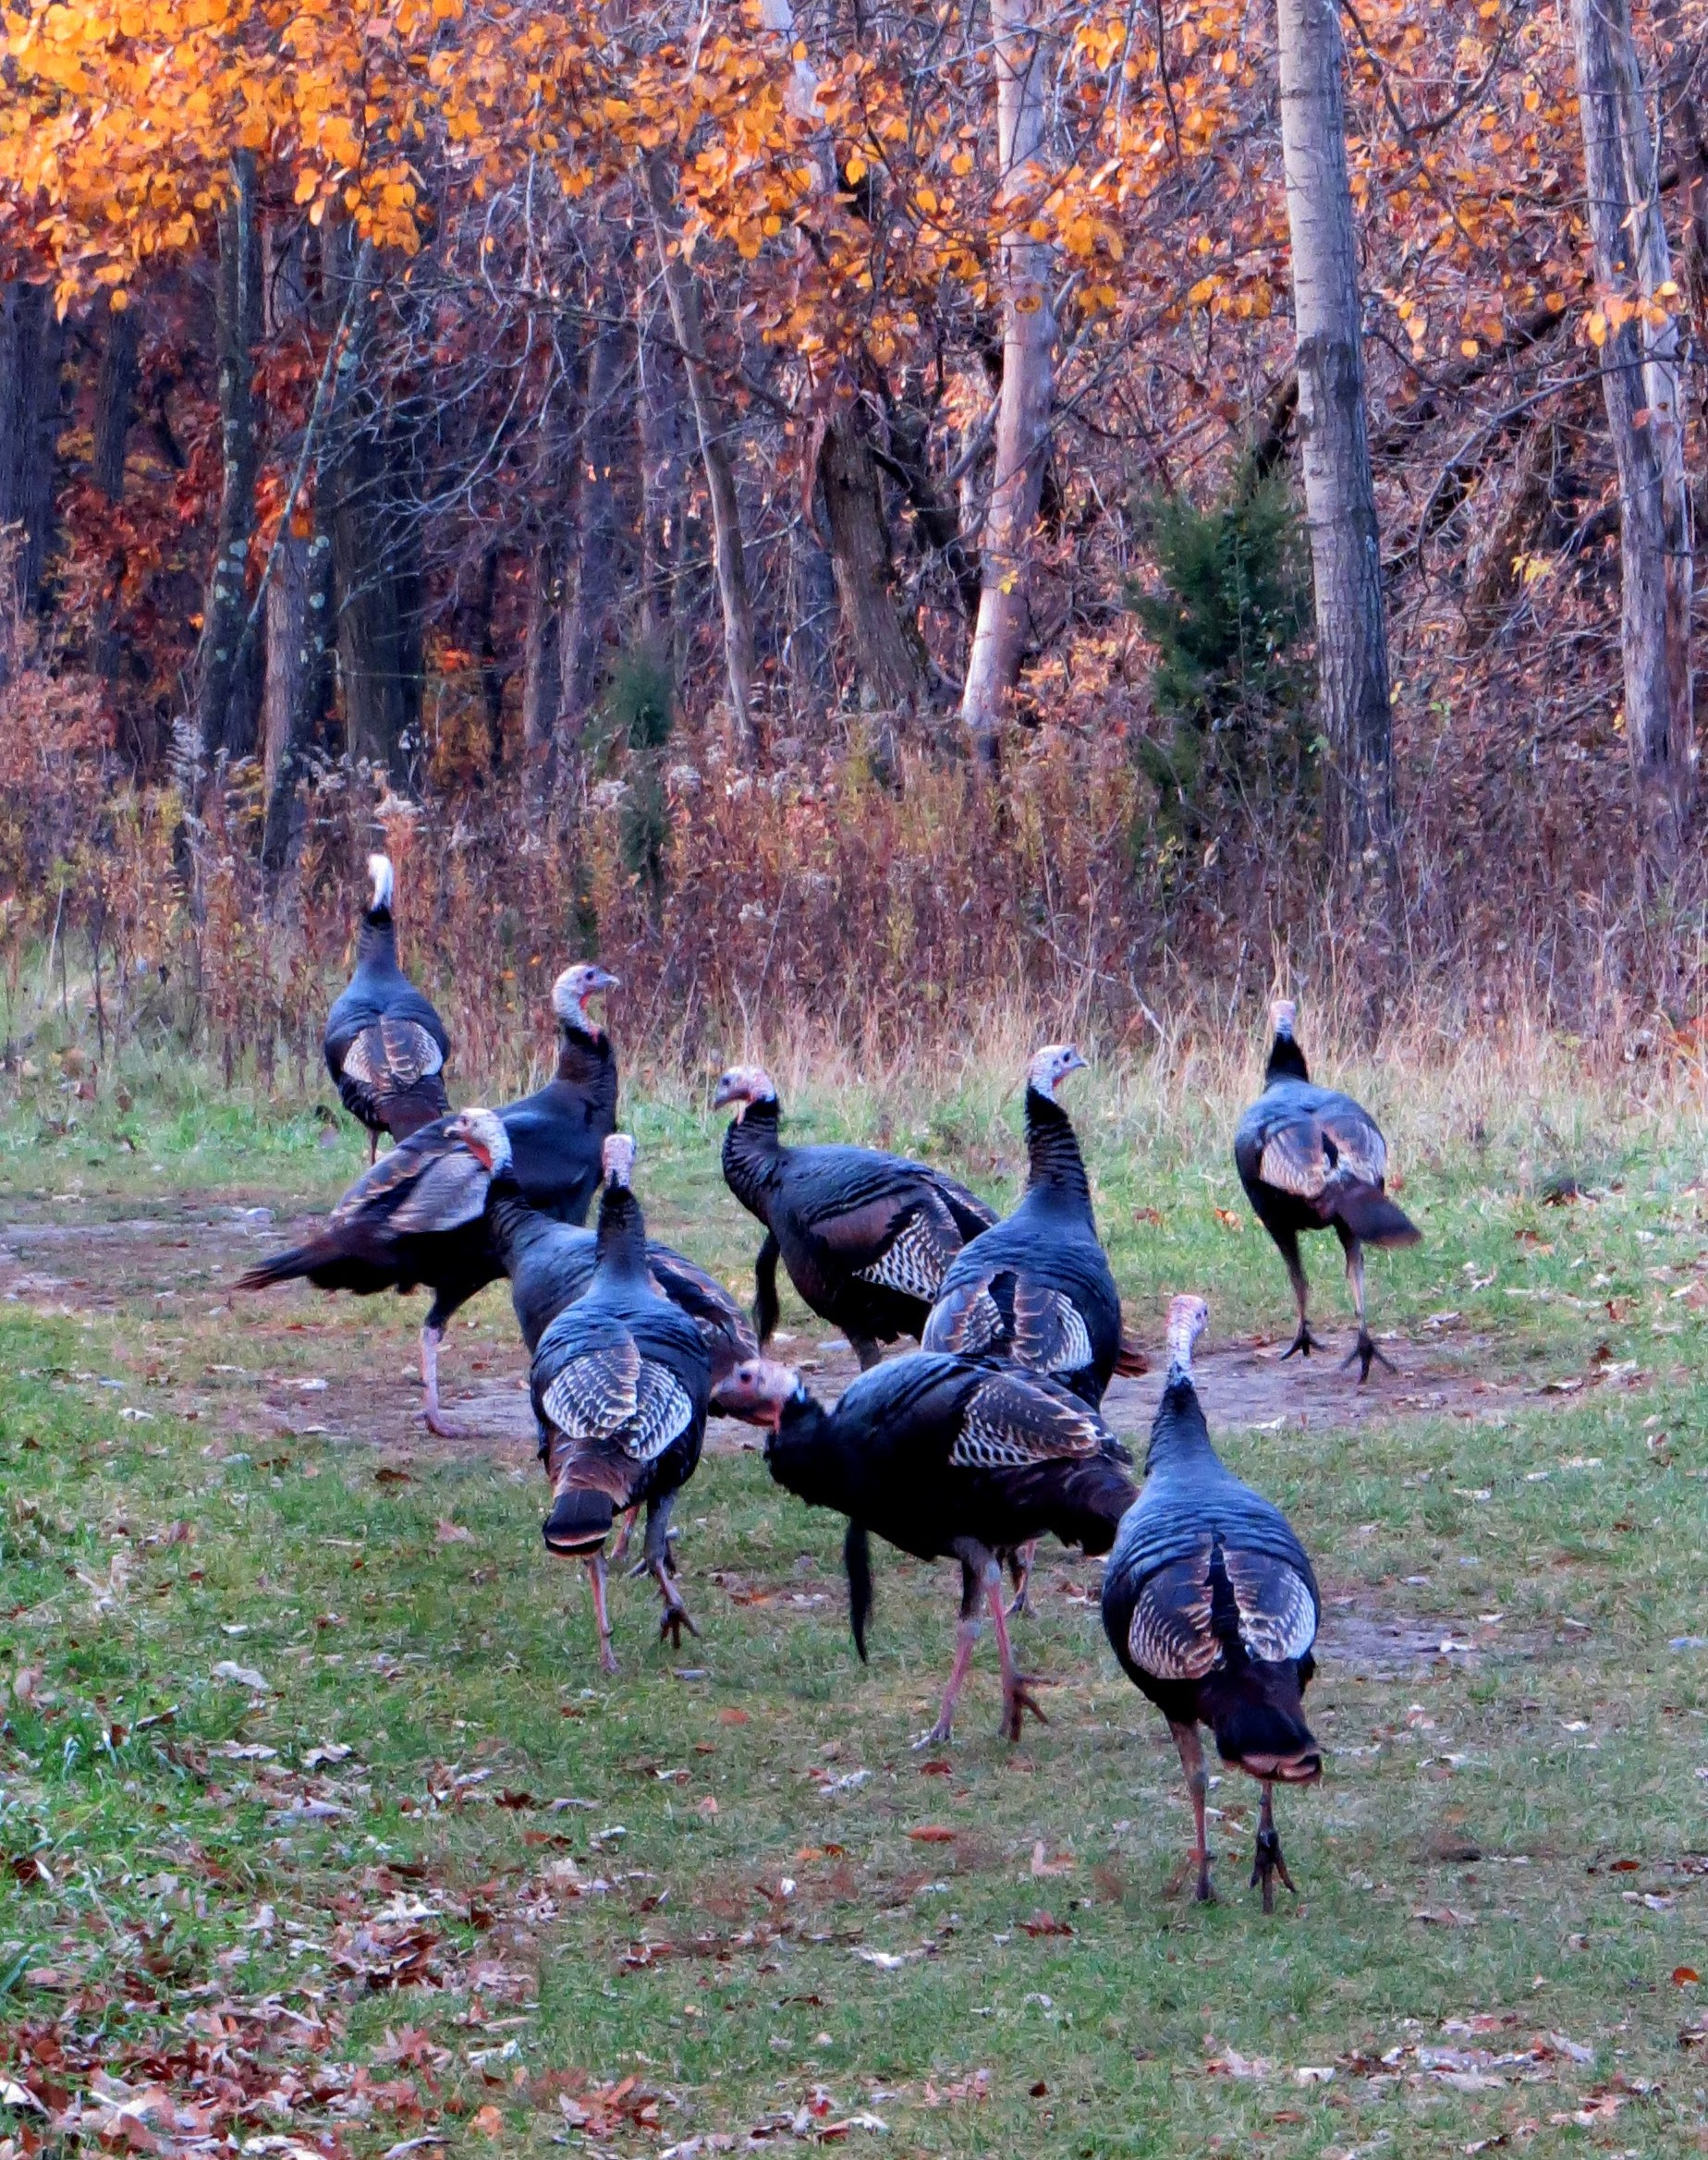 Turkeys on parade, photo by Janet Frost.